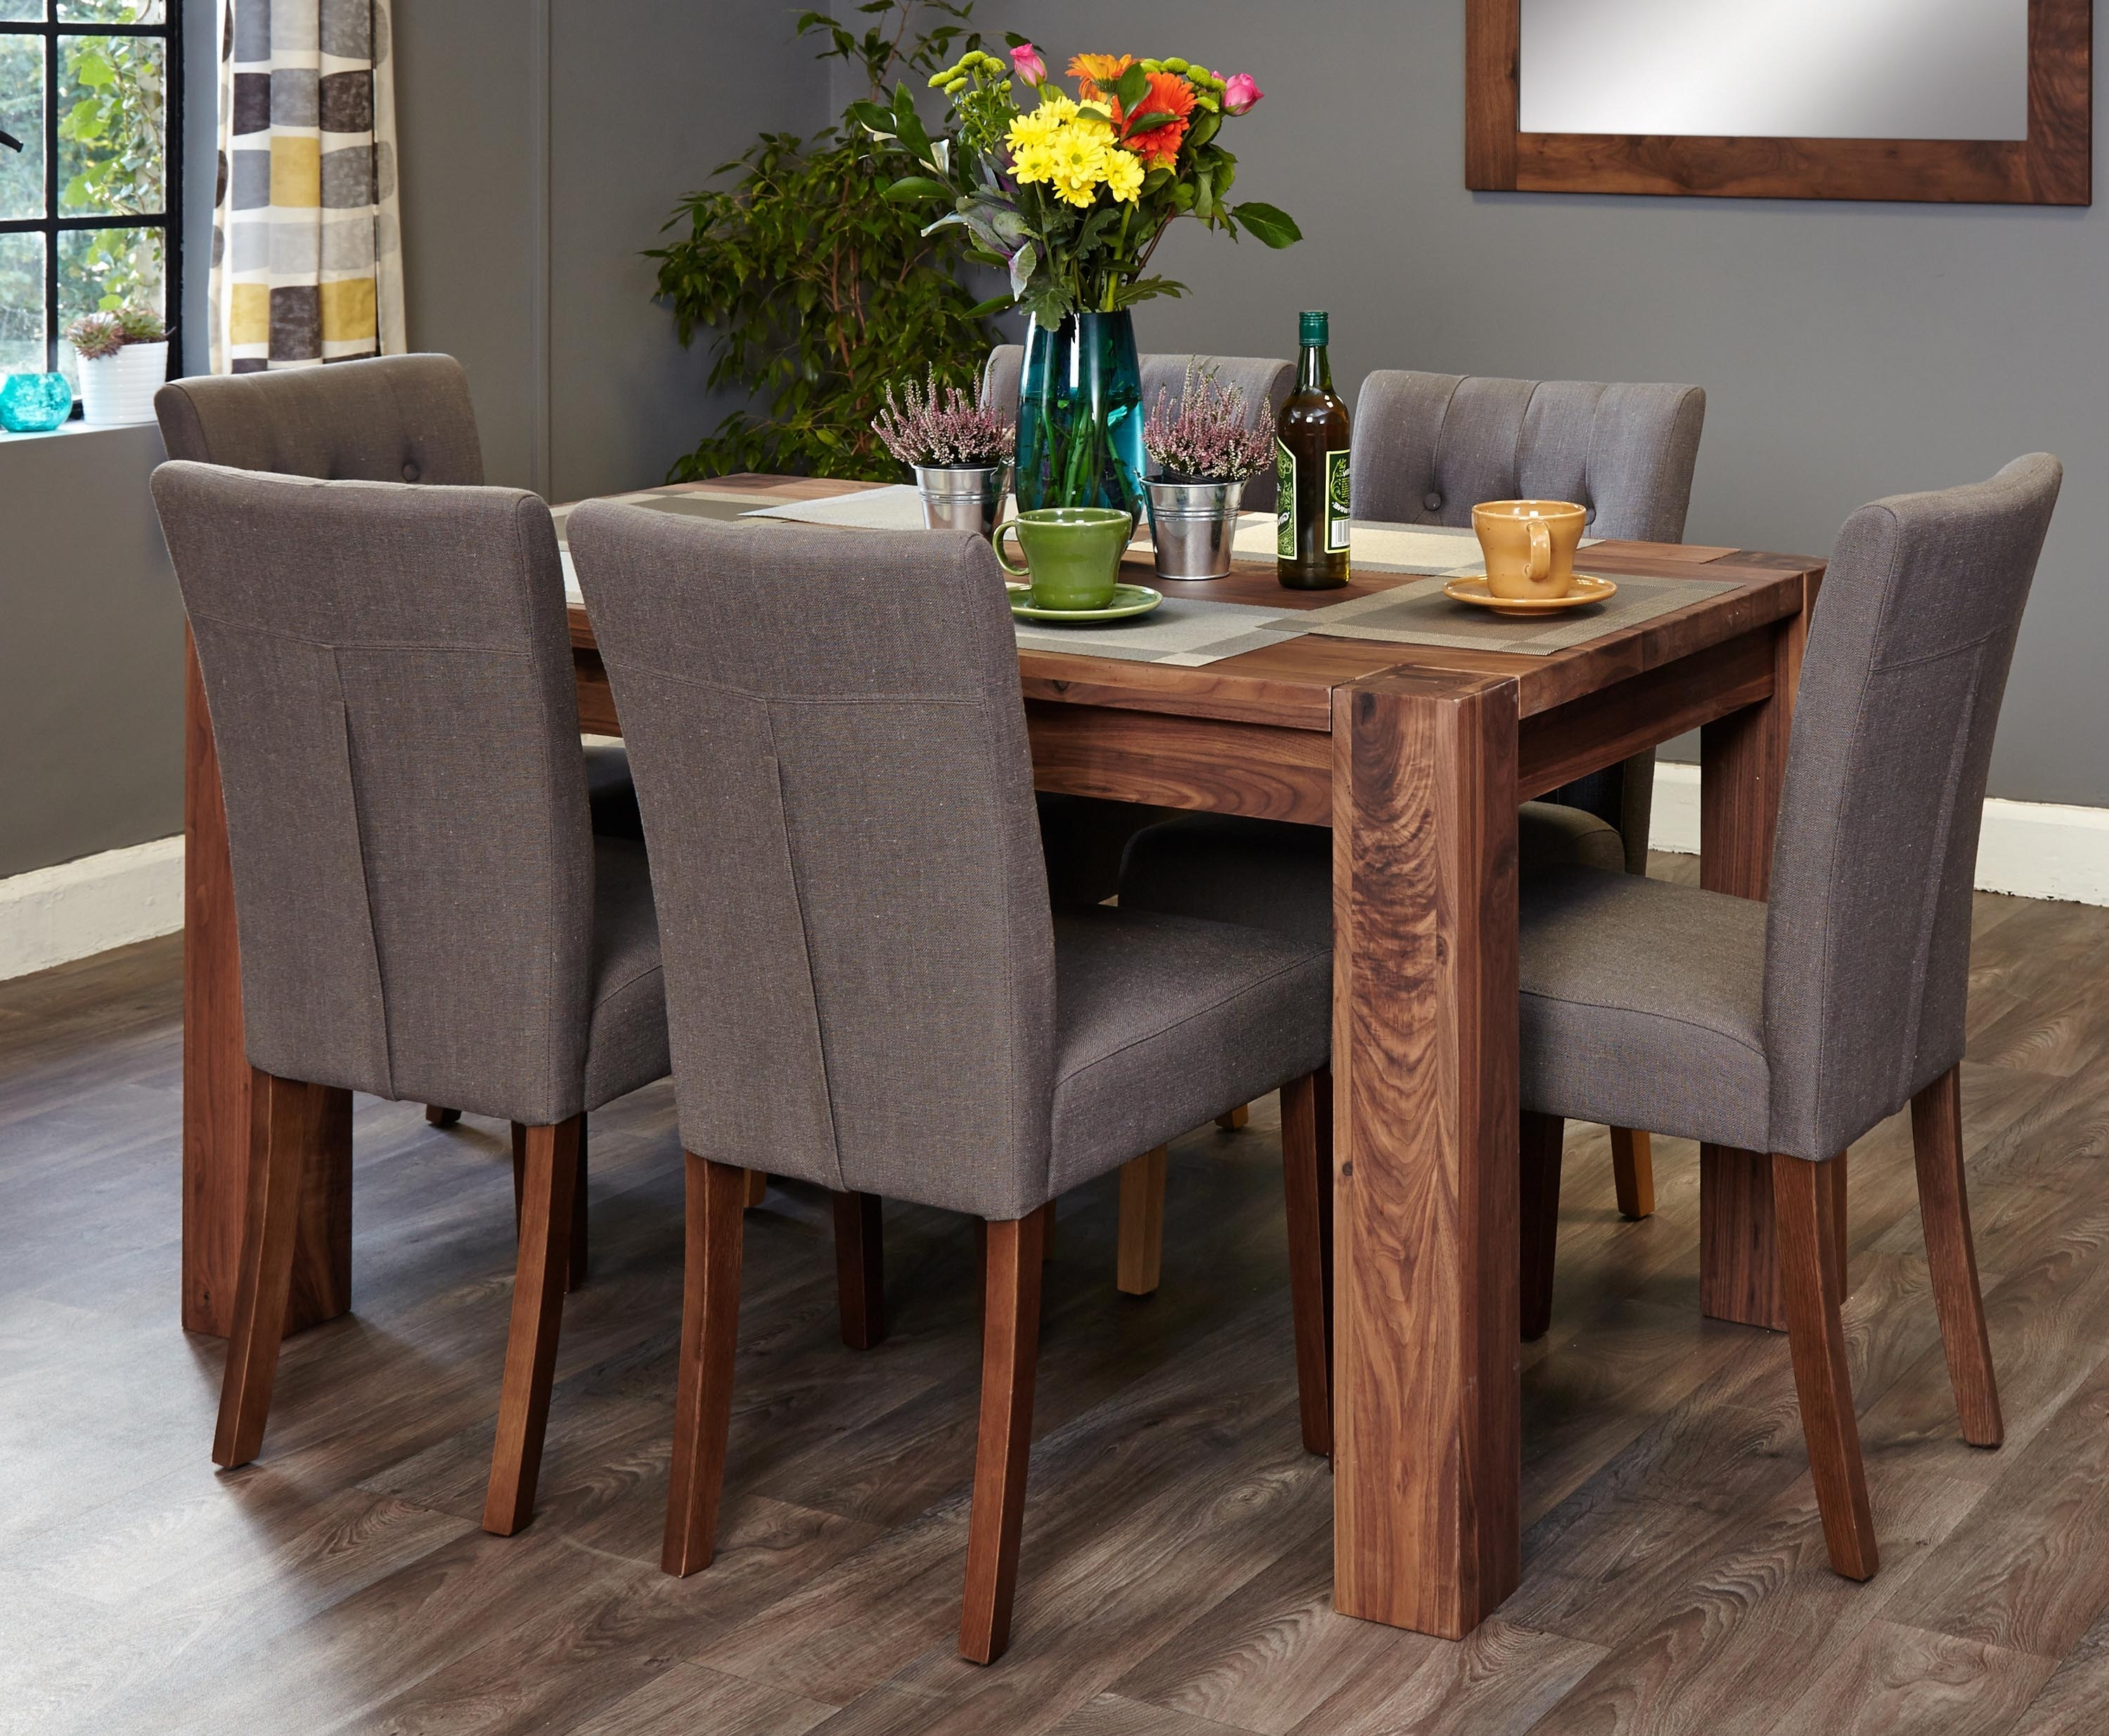 Shiro Walnut 6 Seater Dining Table Set (Slate Flare Back) (Socdr04B Within Recent 6 Seat Dining Tables And Chairs (View 19 of 25)